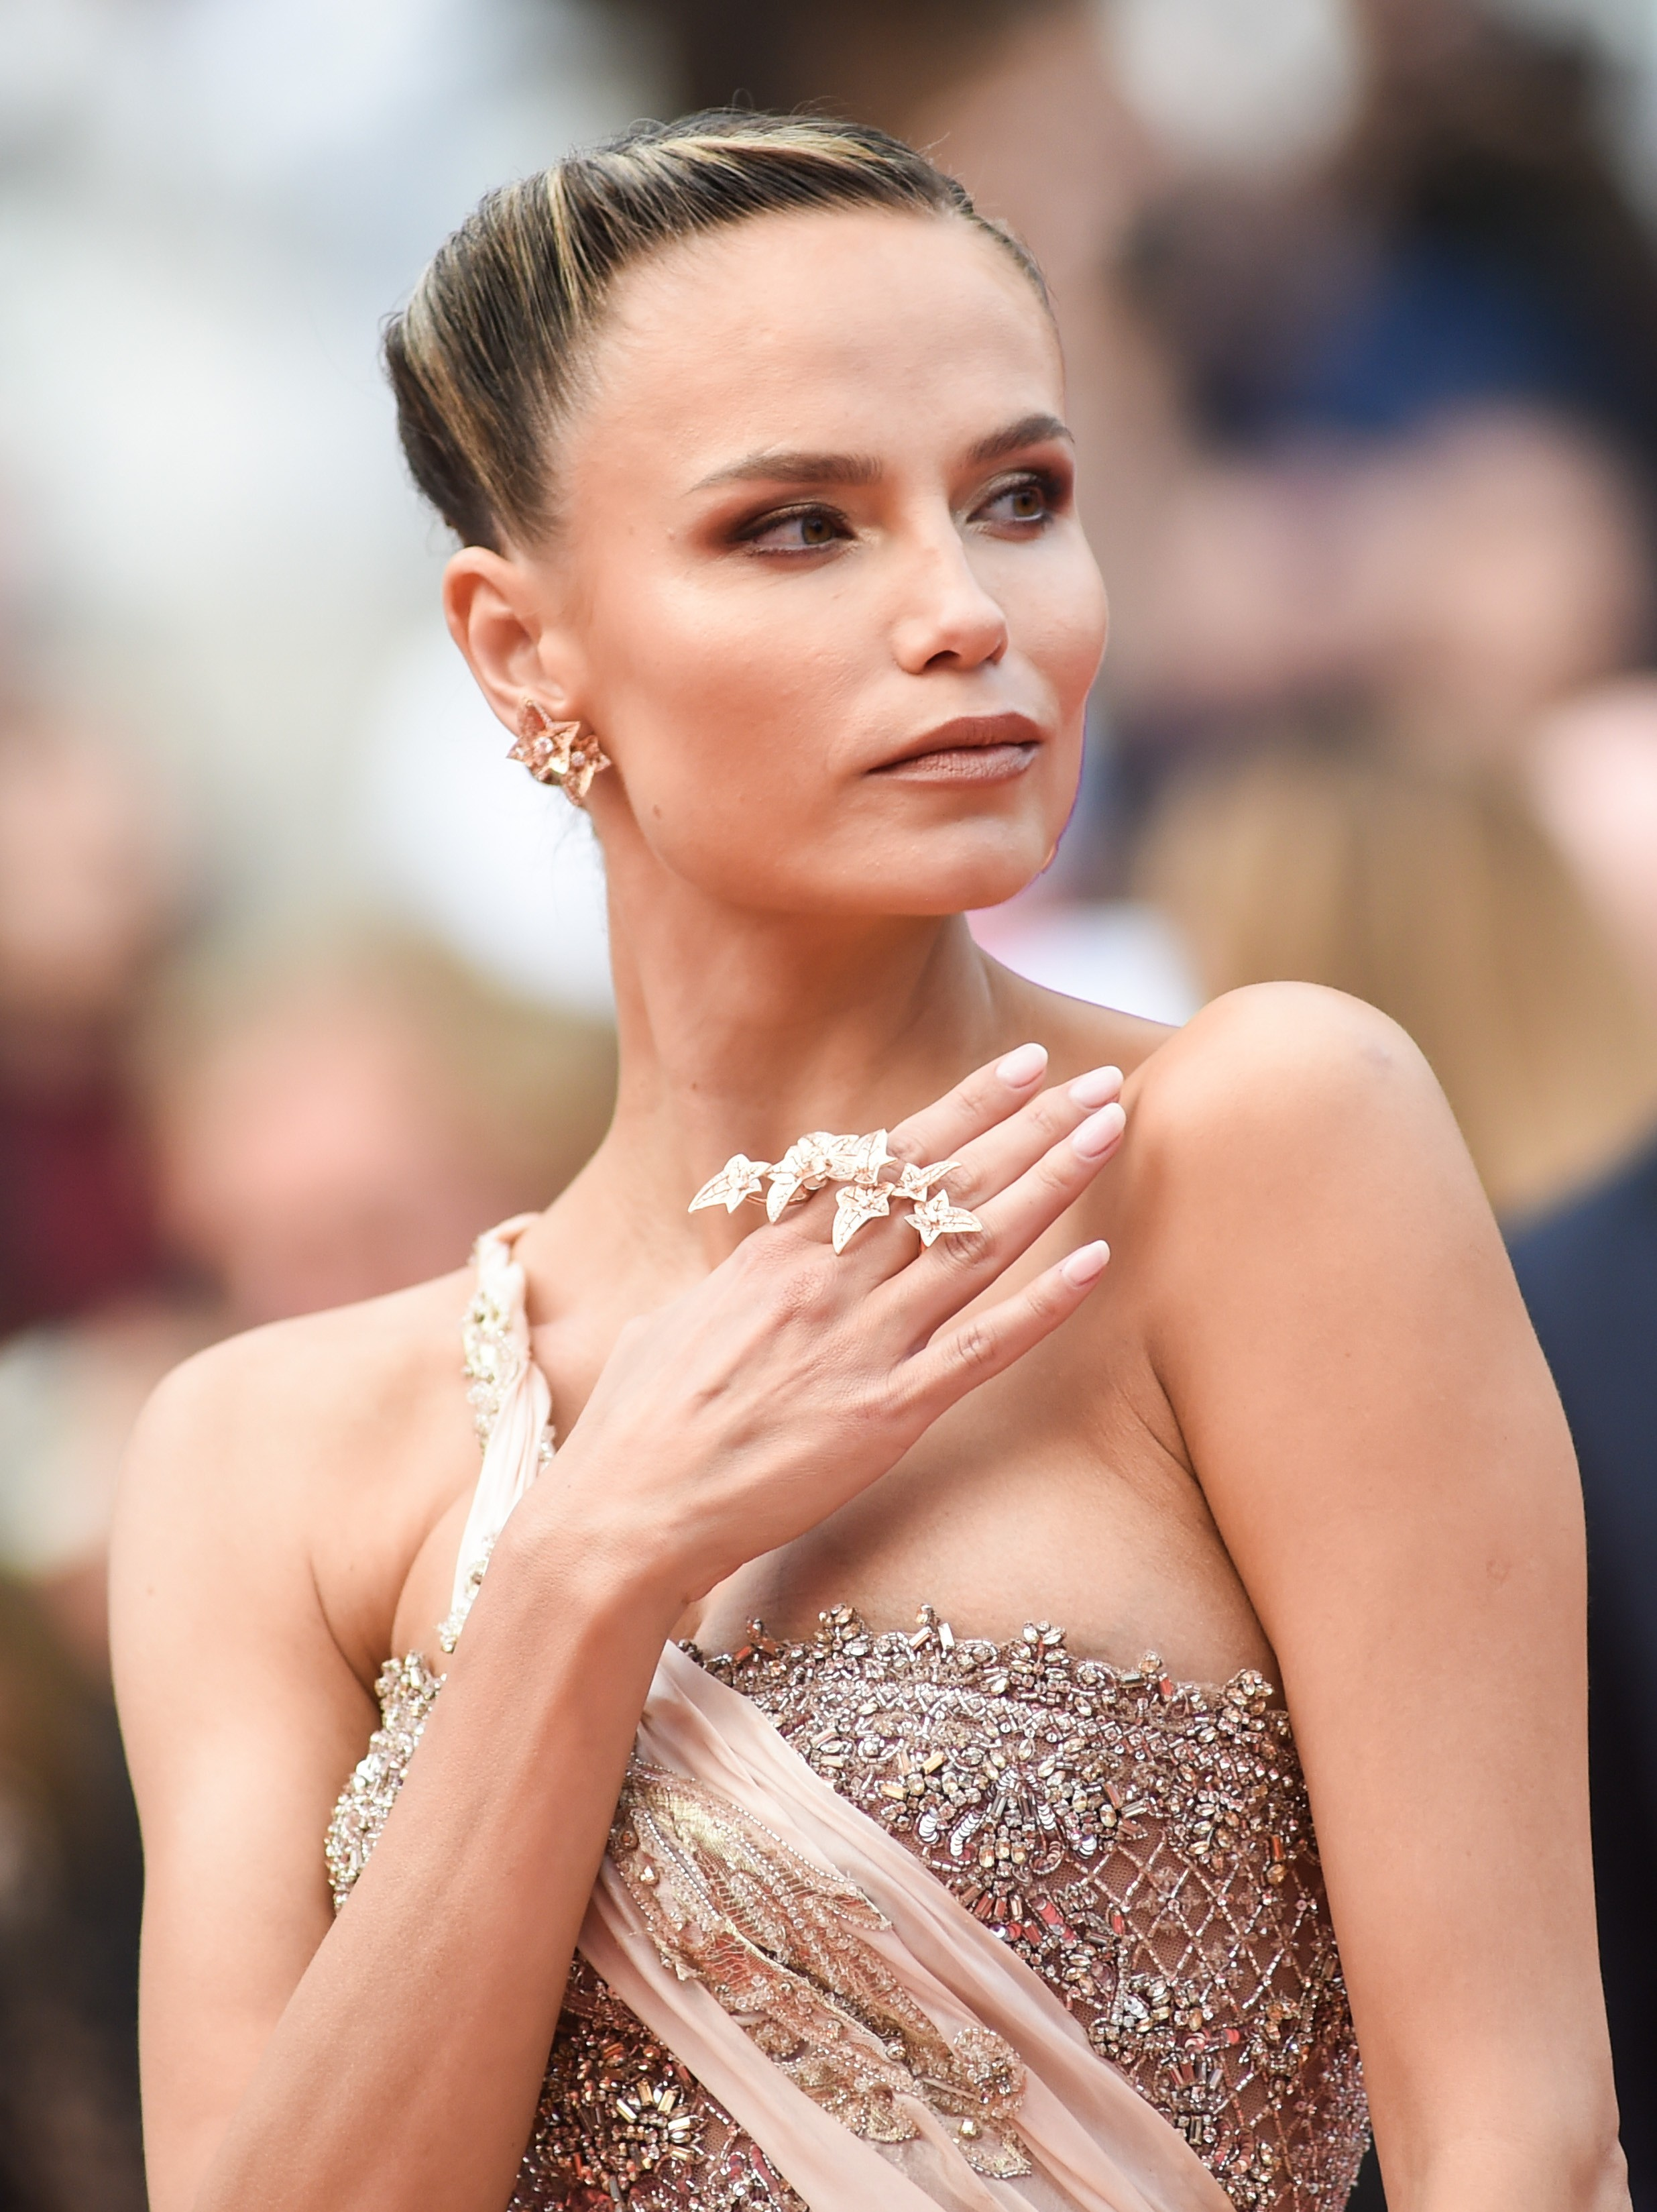 Natasha Poly (photo: Corbis via Getty Images)